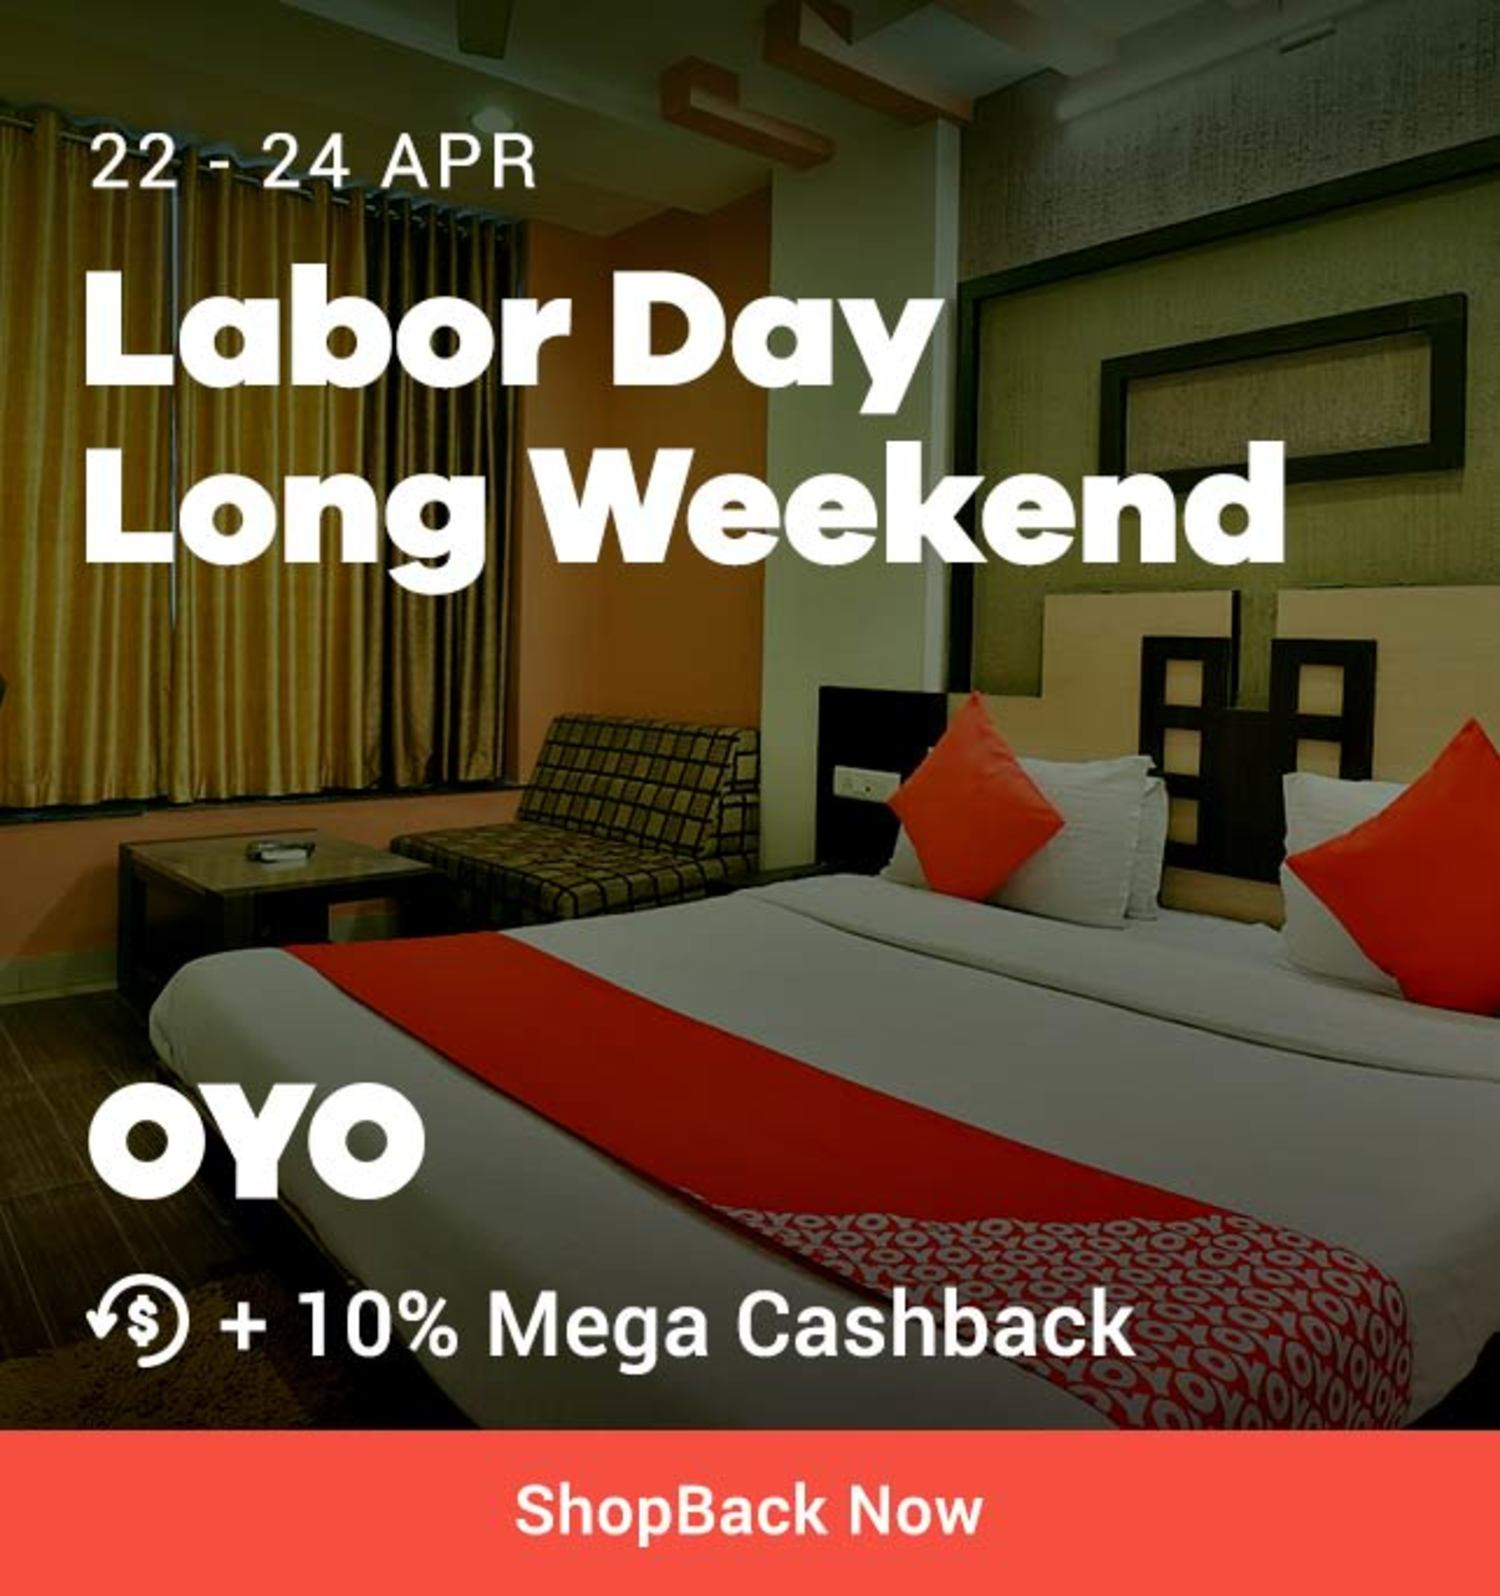 22 - 24 Apr OYO Rooms Book for Labor Day Long Weekend + 10% Mega Cashback (was 8%)